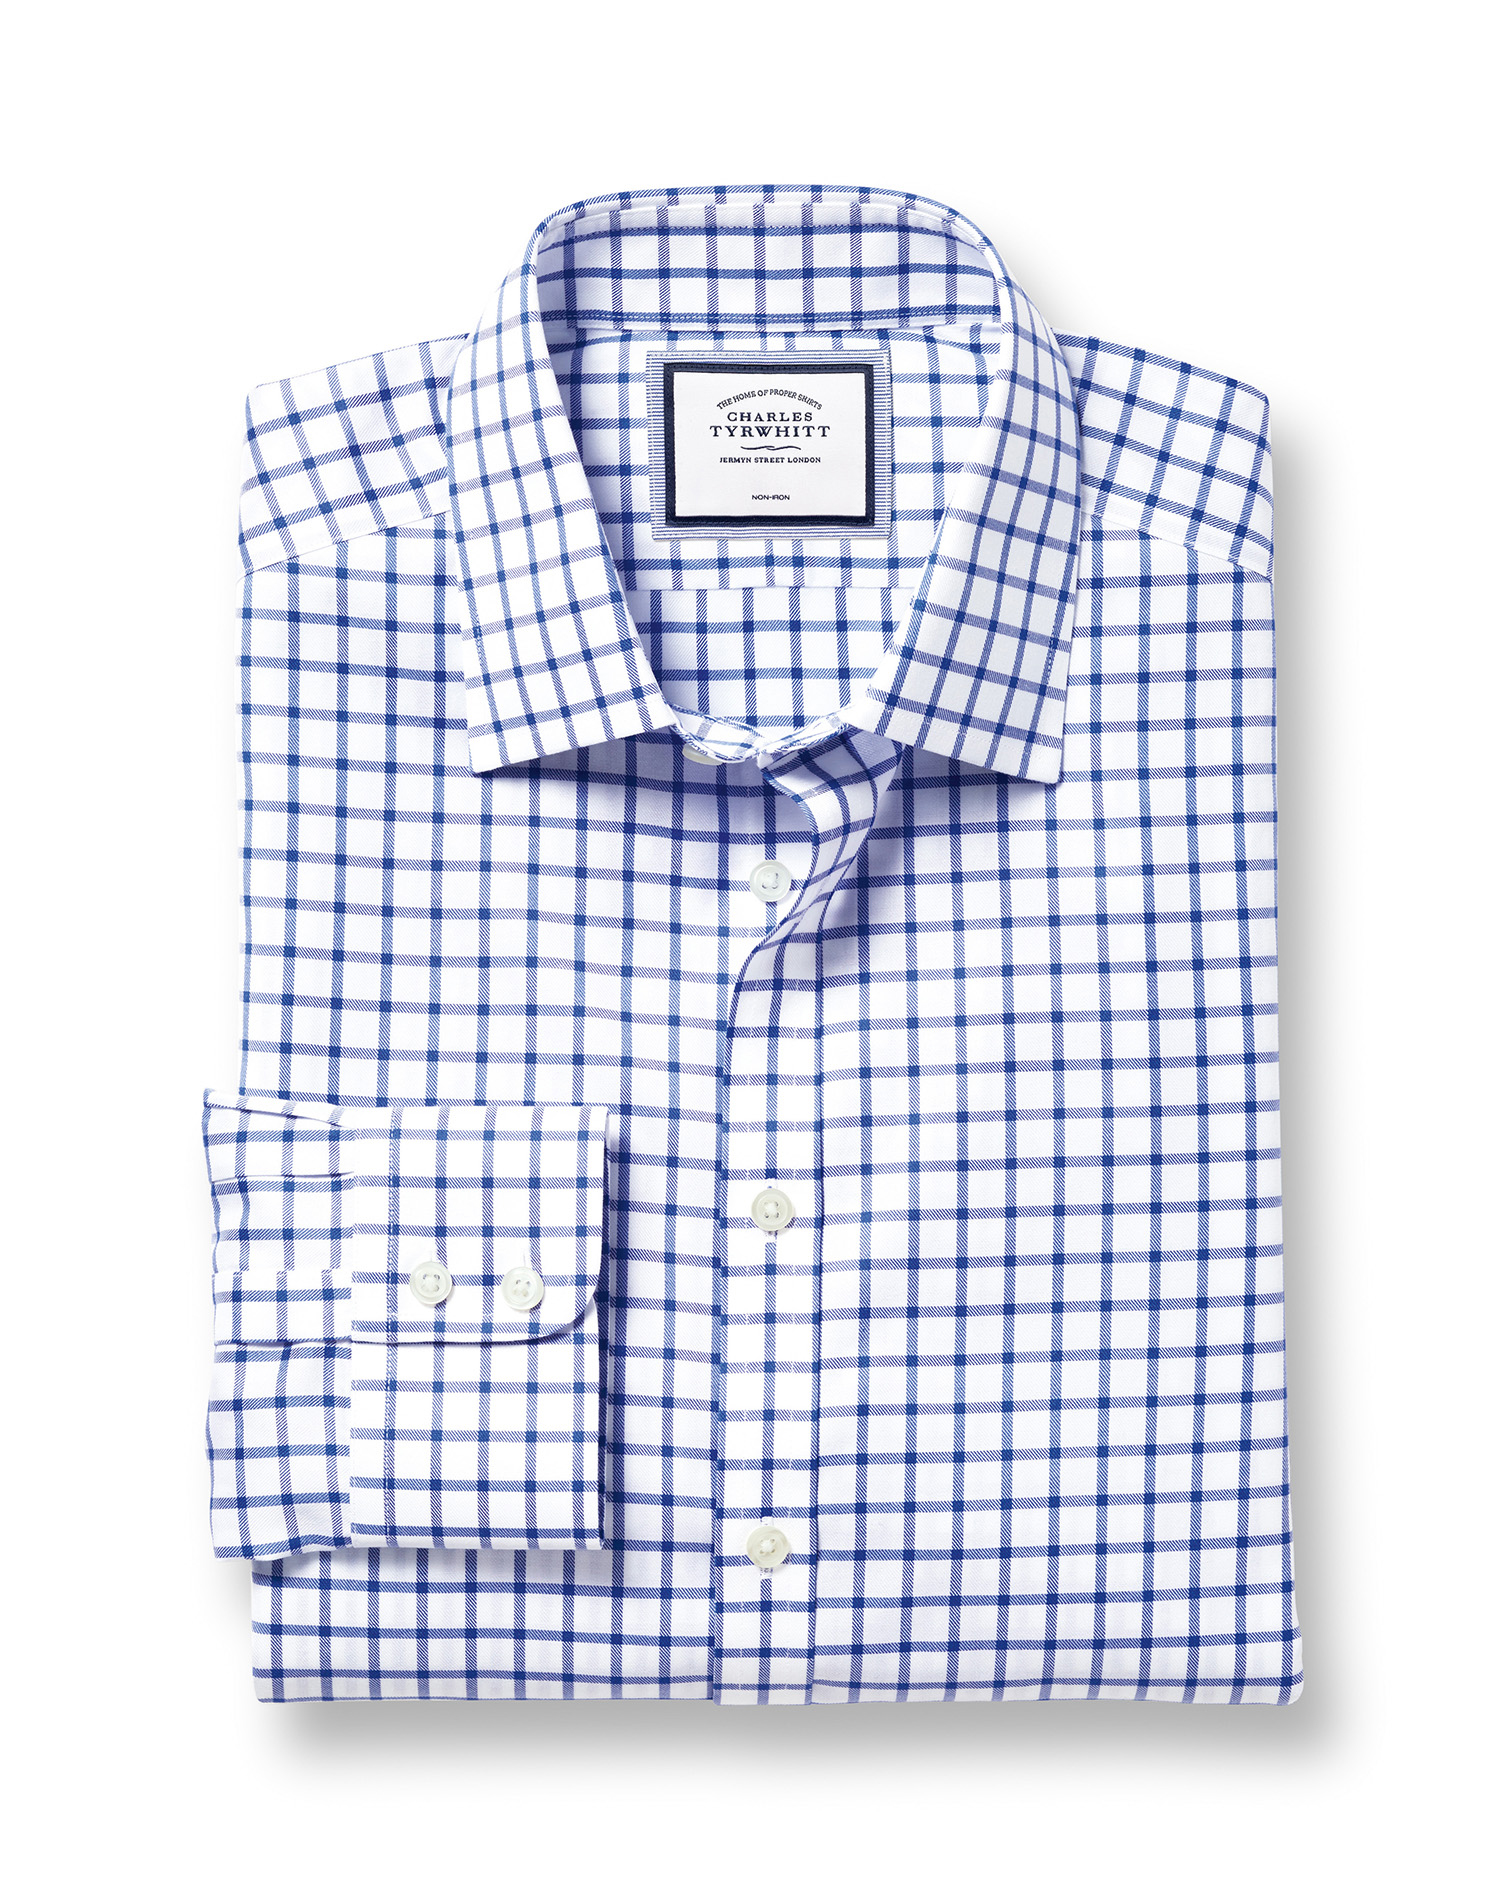 Slim Fit Non-Iron Royal Blue Grid Check Twill Cotton Formal Shirt Double Cuff Size 15/34 by Charles